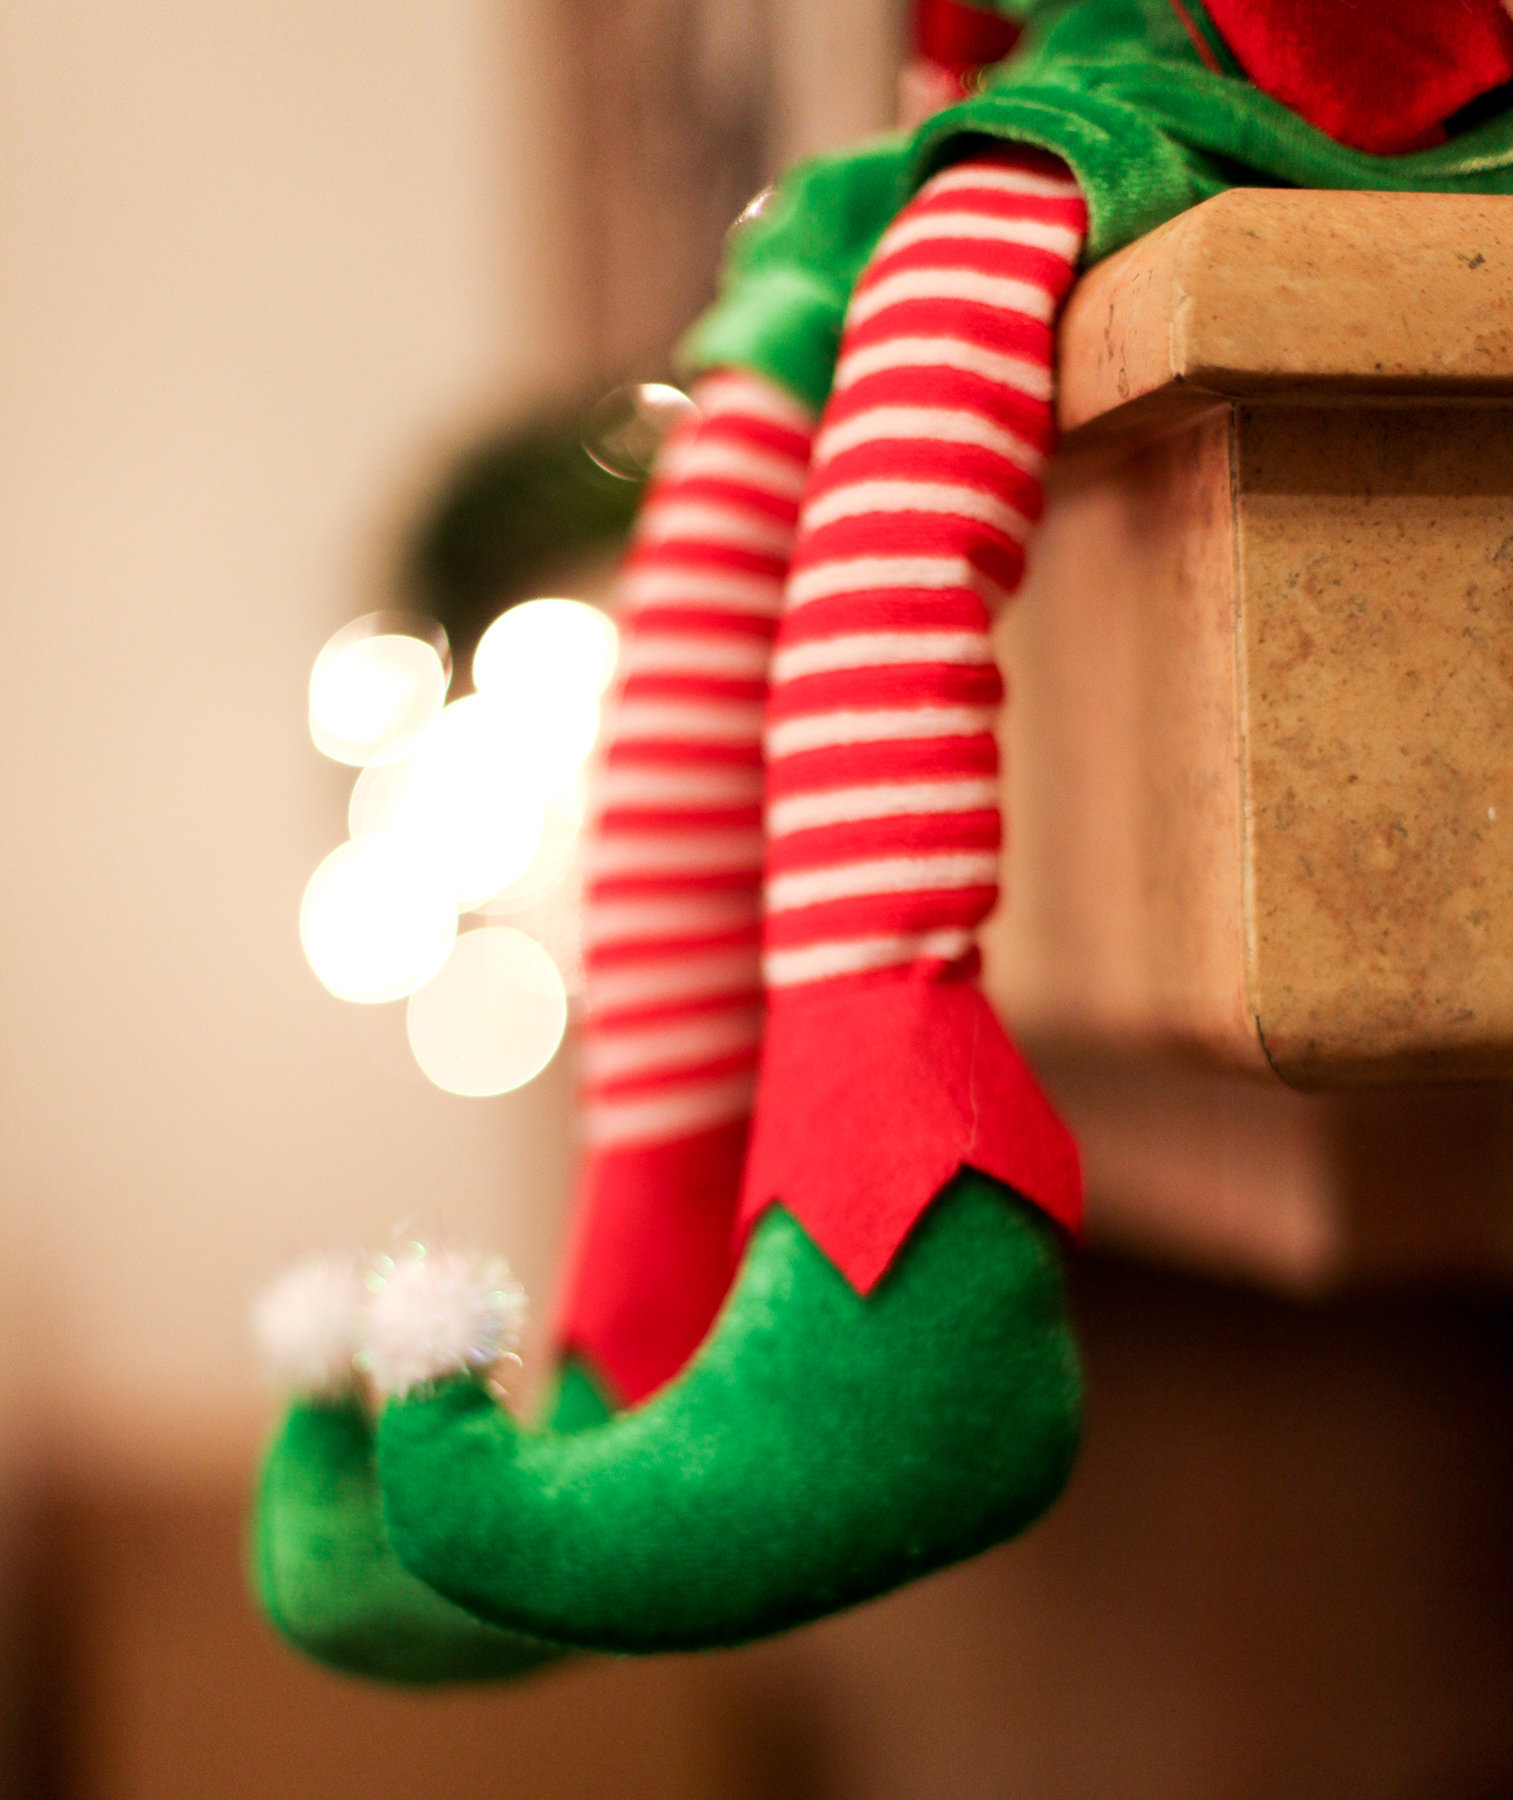 51 Clever Elf on the Shelf Names for Santa's Sneakiest Helpers